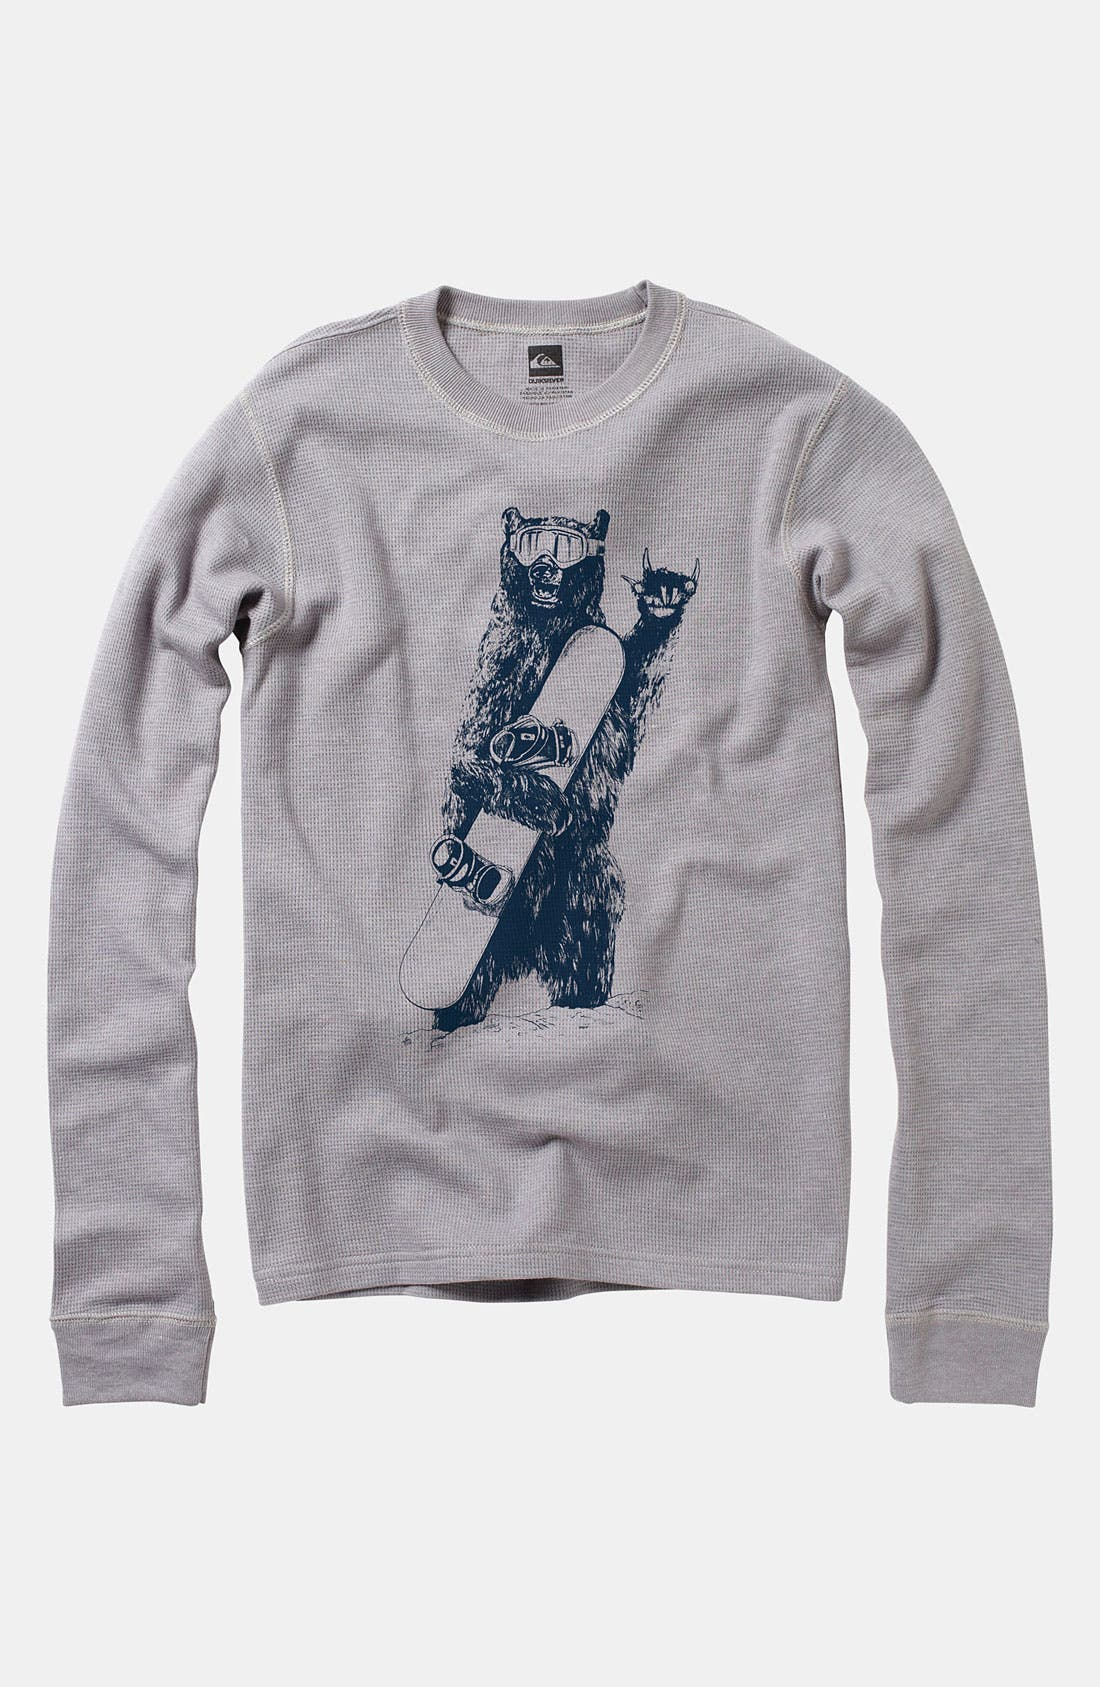 Main Image - Quiksilver 'Joyride' Thermal Top (Big Boys)